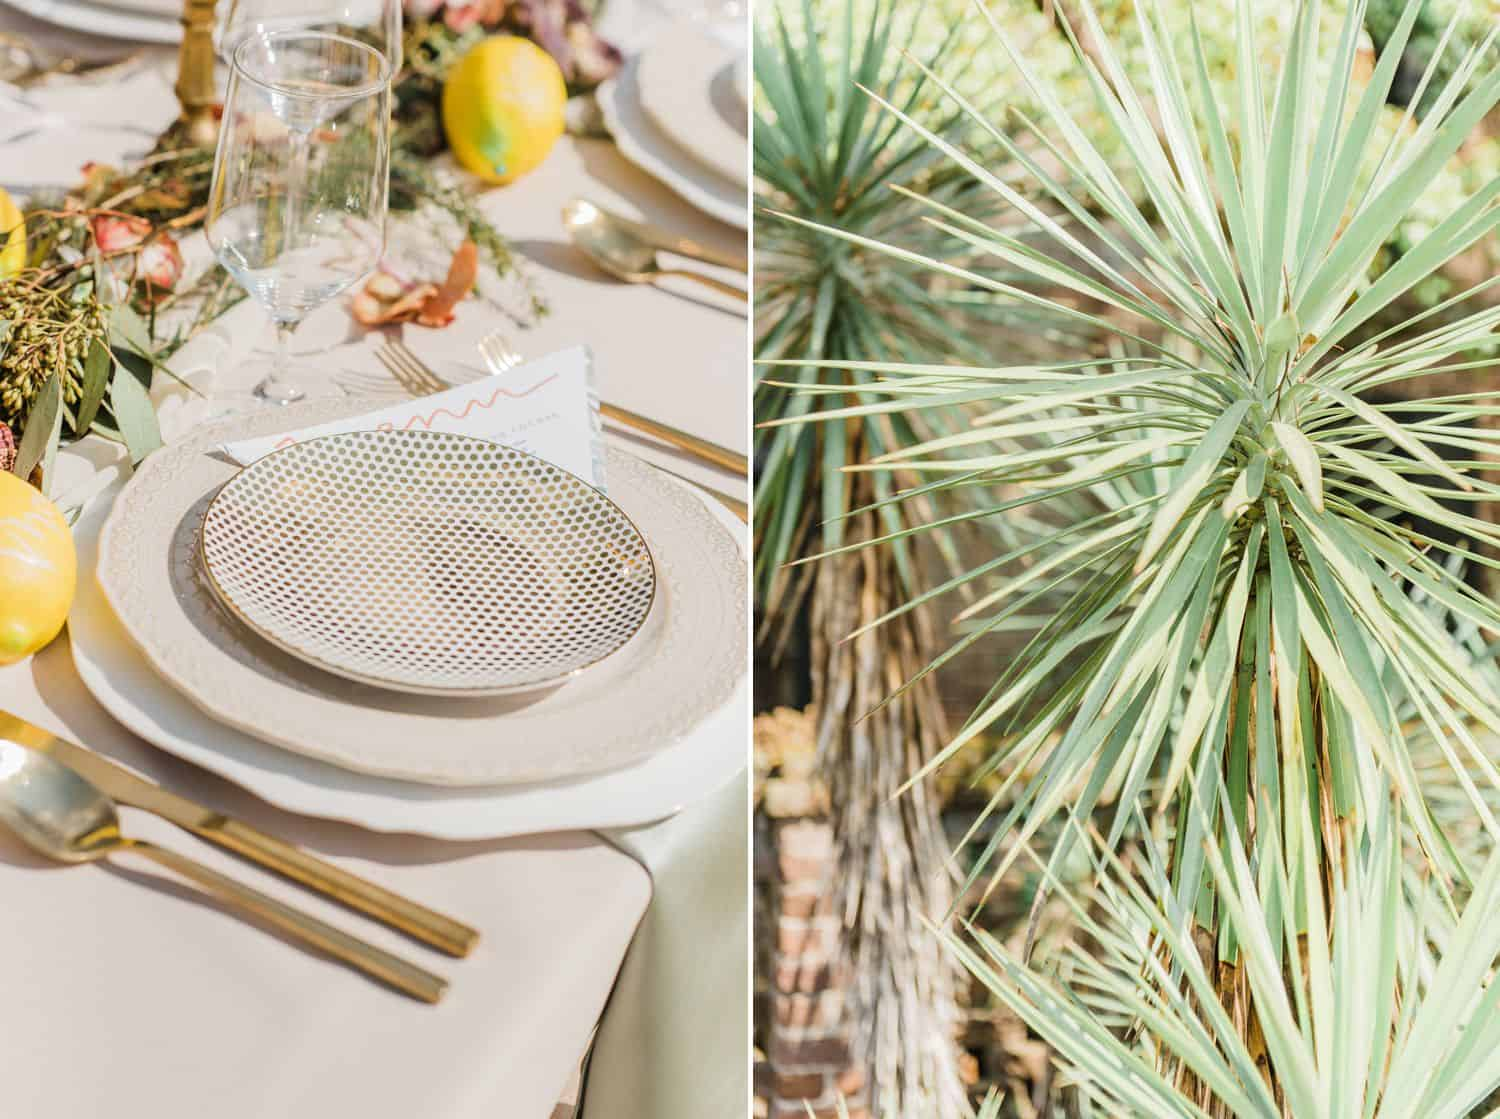 Citrus and Botanical Centerpieces at Outdoor Southern Wedding Reception: Get Photography Clients with Styled Shoots